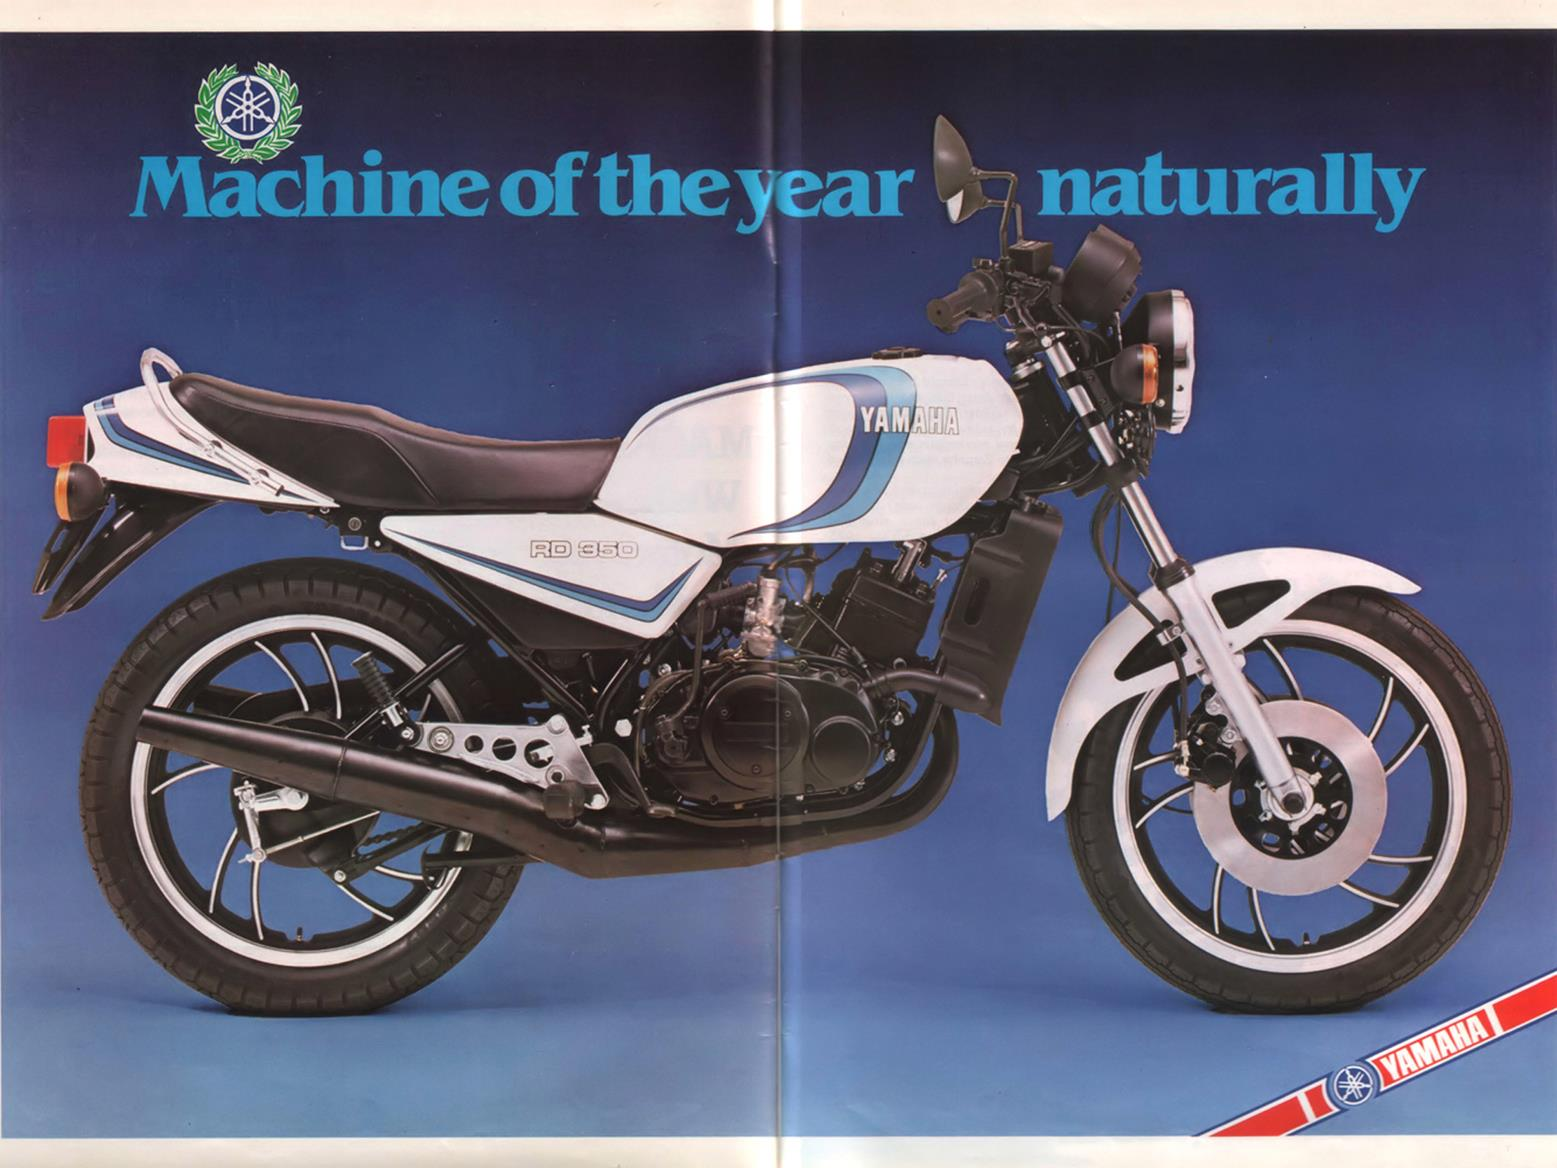 MCN's machine of the year for 1980 was the Yamaha RD350LC